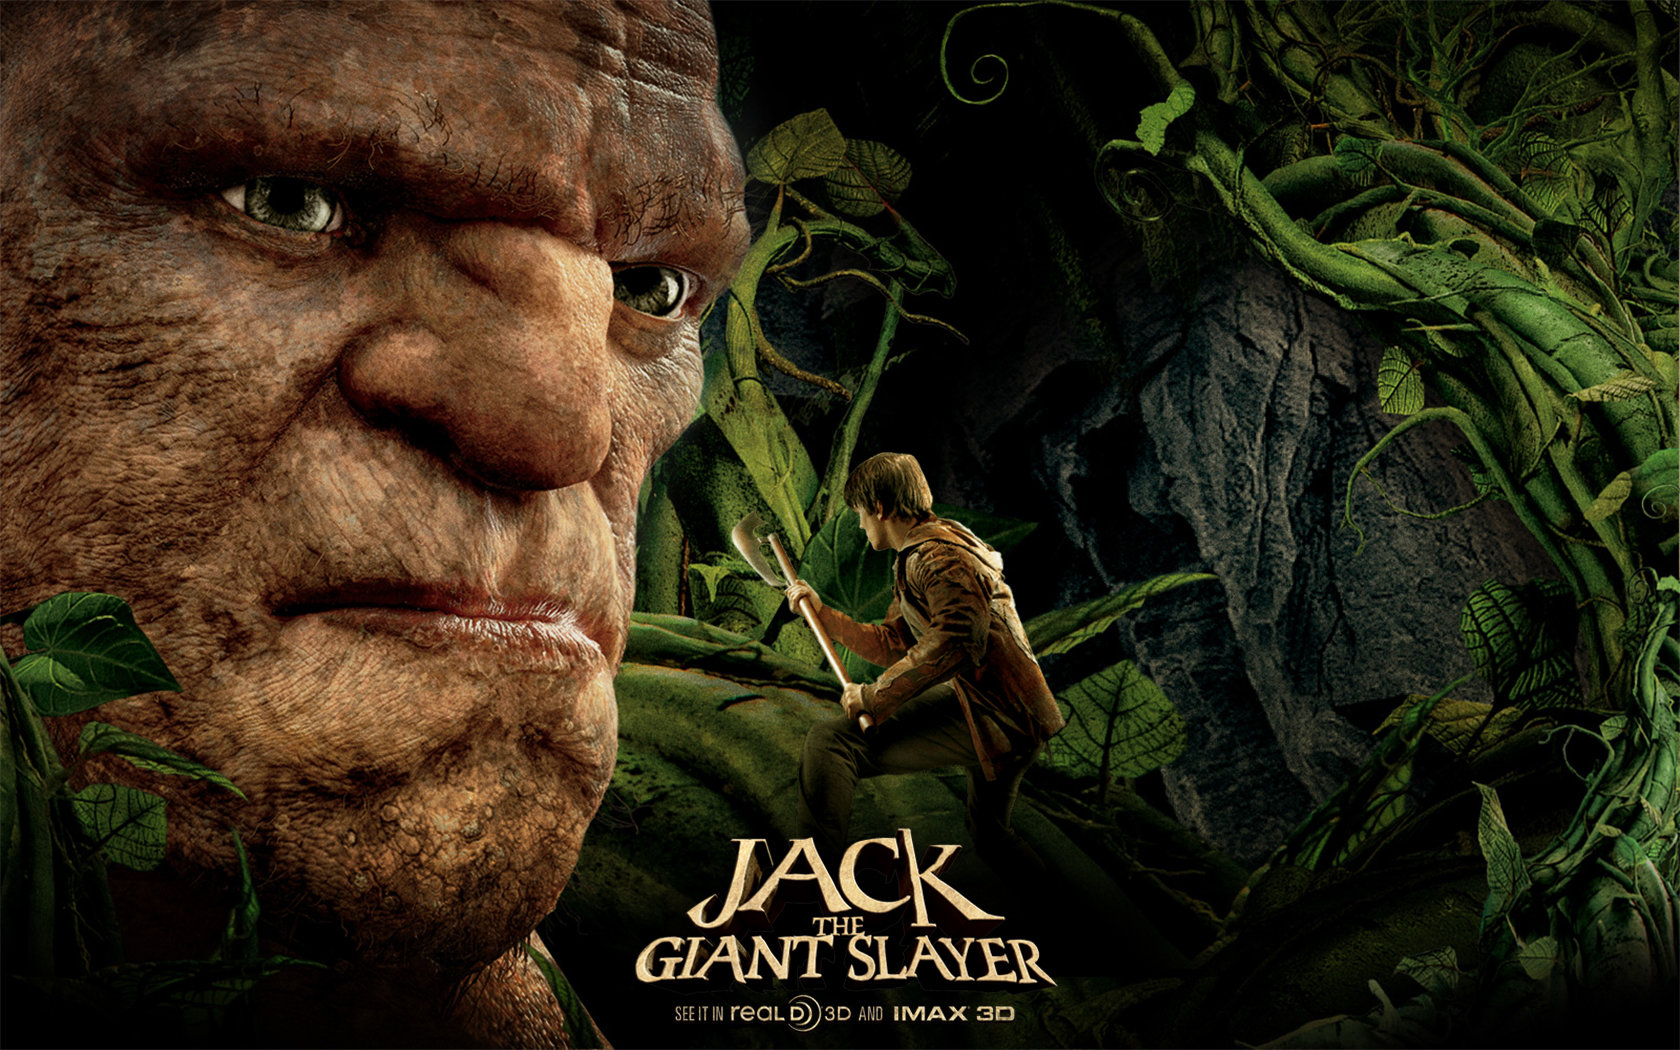 Download hd 1680x1050 Jack The Giant Slayer computer background ID:27858 for free